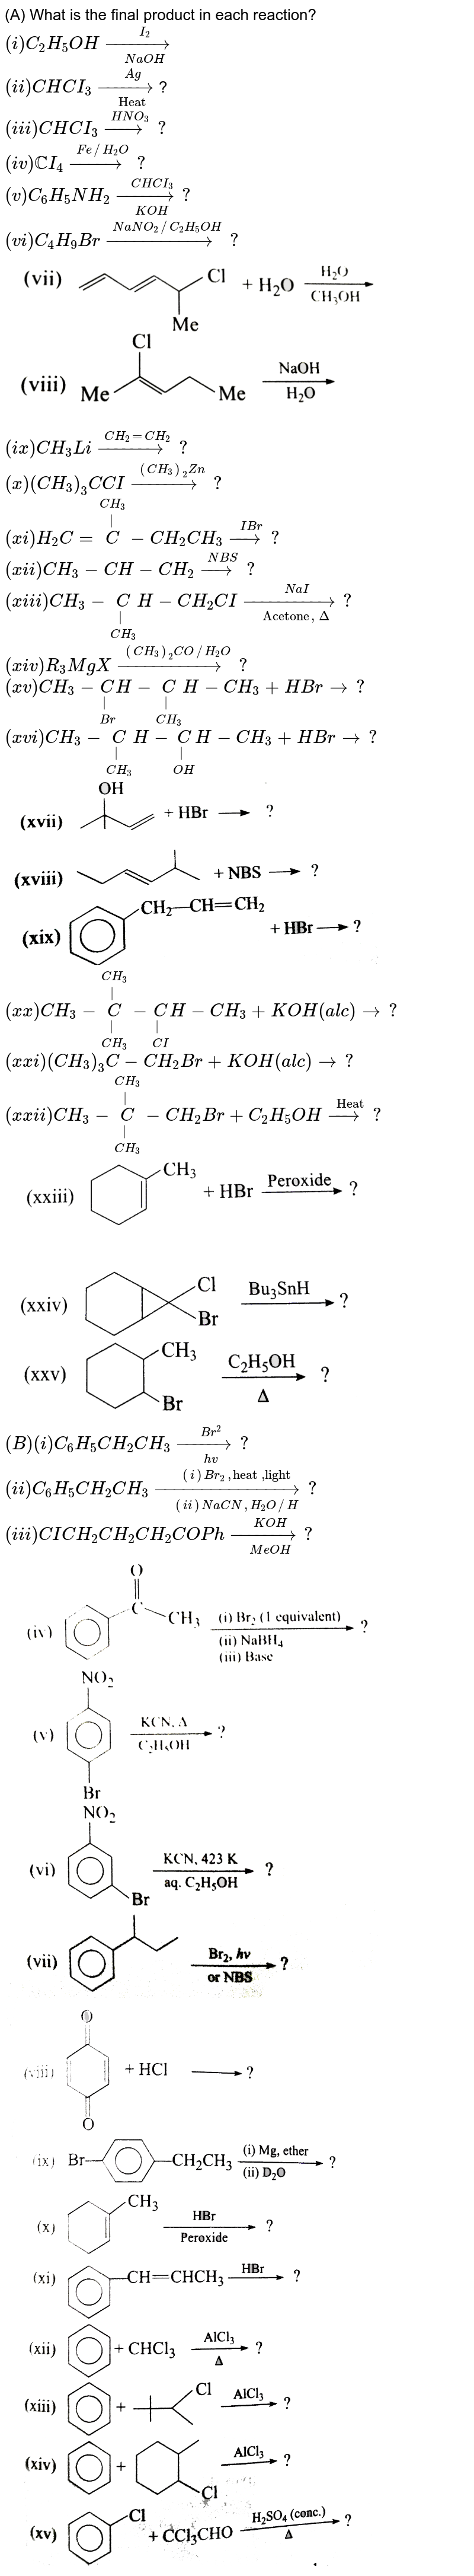 """(A)  What is the final product in each reaction? <br> `(i) C_(2)H_(5)OH overset(I_(2))underset(NaOH)(to)` <br>  `(ii) CHCI_(3) overset(Ag)underset(""""Heat"""")(to)`? <br> `(iii) CHCI_(3) overset(HNO_(3))(to)?` <br> `(iv) CCI_(4) overset(Fe//H_(2)O)(to)?` <br> `(v) C_(6)H_(5)NH_(2) overset(CHCI_(3))underset(KOH)(to)?` <br> `(vi) C_(4)H_(9)Br overset(NaNO_(2)//C_(2)H_(5)OH)(to)?` <br> <img src=""""https://d10lpgp6xz60nq.cloudfront.net/physics_images/GRB_ORG_CHM_P2_C09_E01_001_Q01.png"""" width=""""80%""""> <br> `(ix) CH_(3)Li overset(CH_(2)=CH_(2))(to)?` <br> `(x) (CH_(3))_(3) C CI overset((CH_(3))_(2)Zn)(to)?` <br>`(x i) H_(2)C=overset(CH_(3))overset(